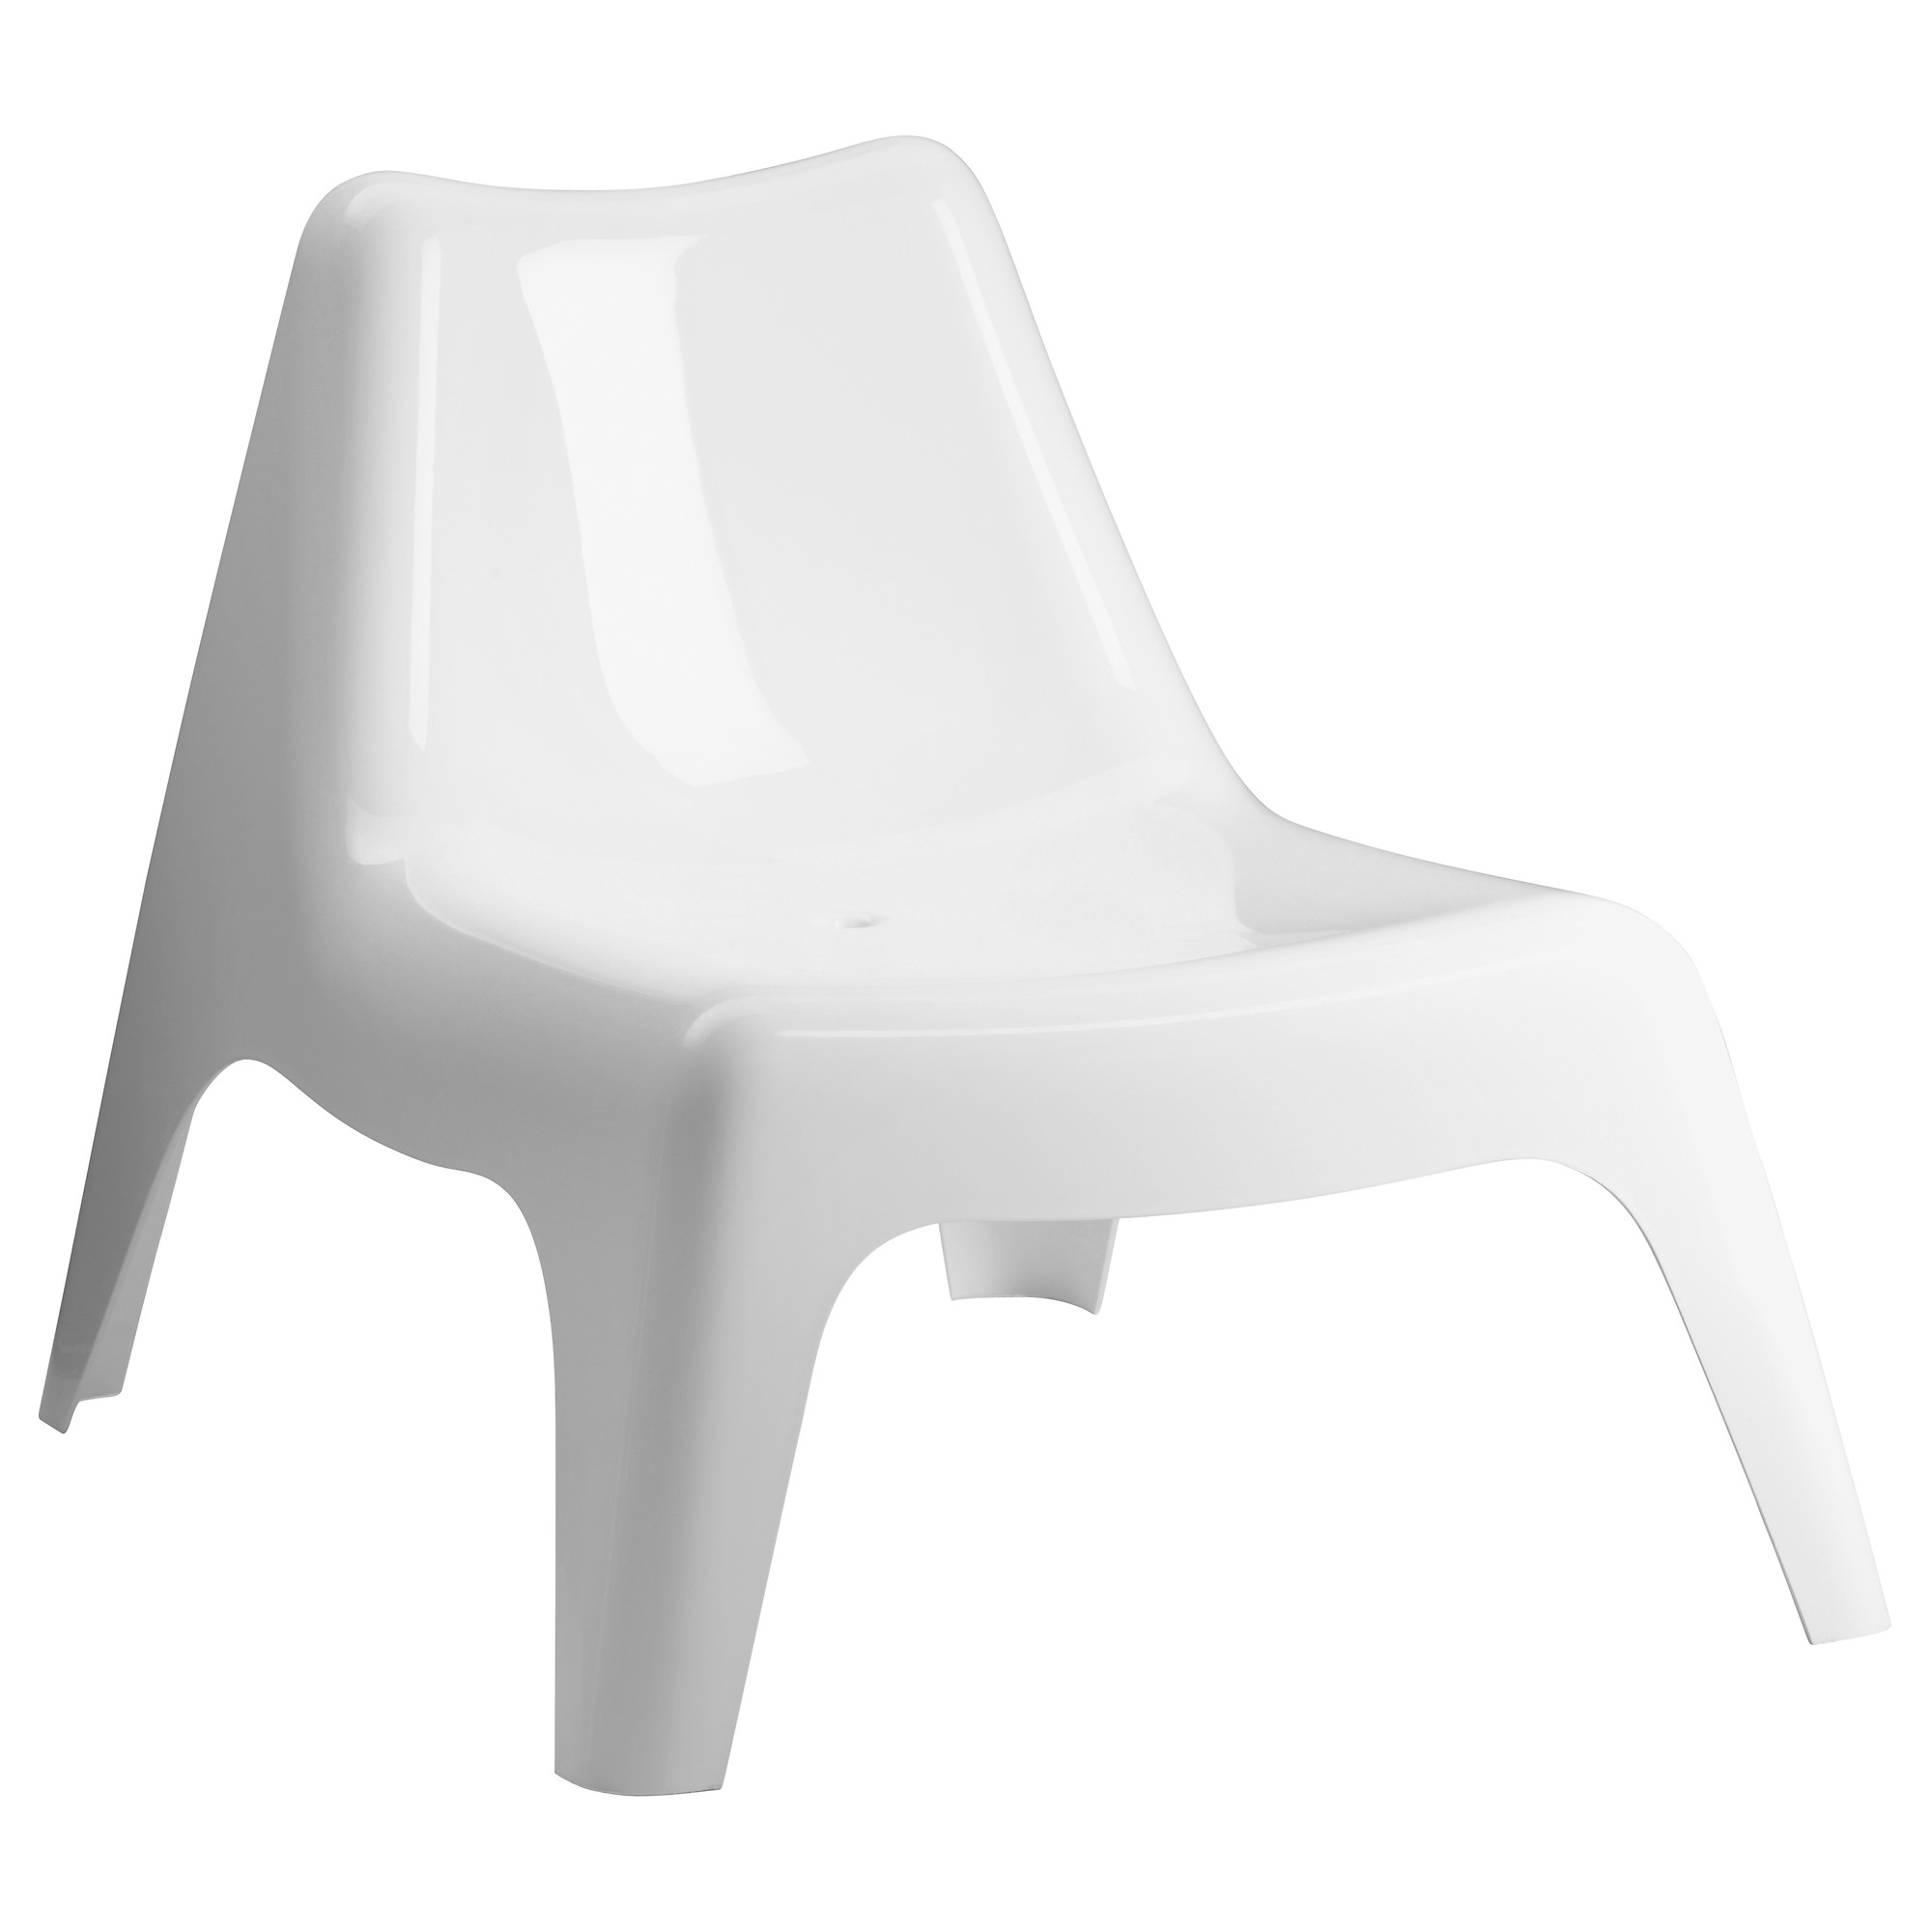 Newest Outdoor Ikea Chaise Lounge Chairs For Ikea Ps Vågö Chair, Outdoor – White – Ikea (View 6 of 15)